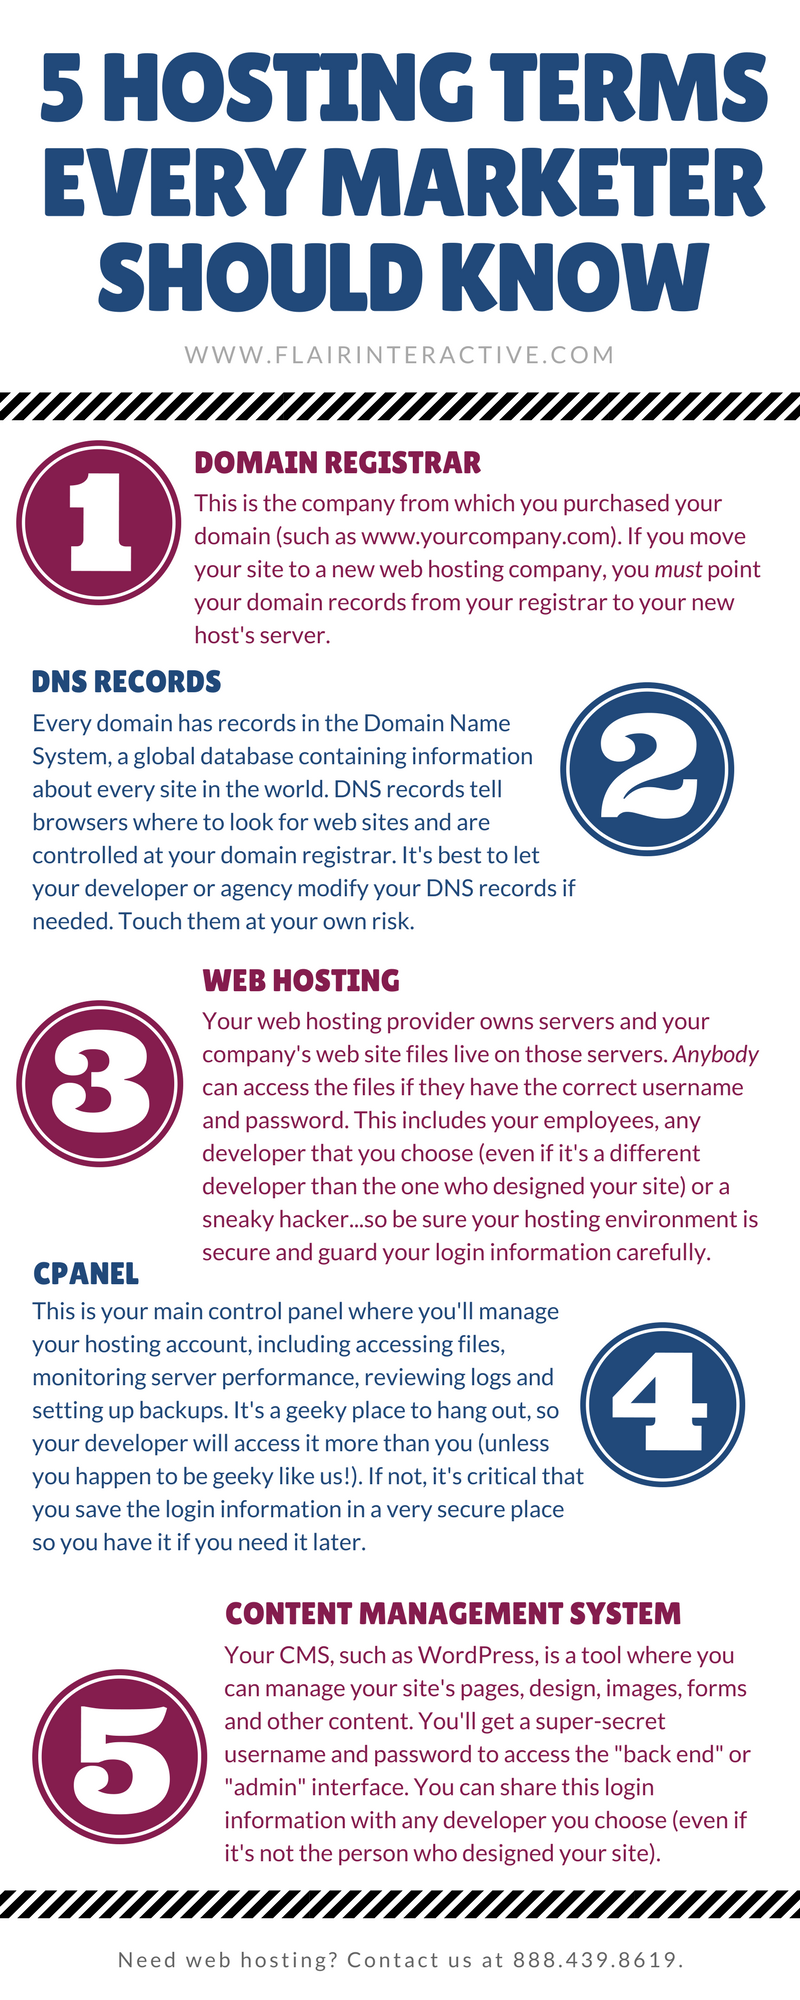 5 Hosting Terms Every Marketer Should Know